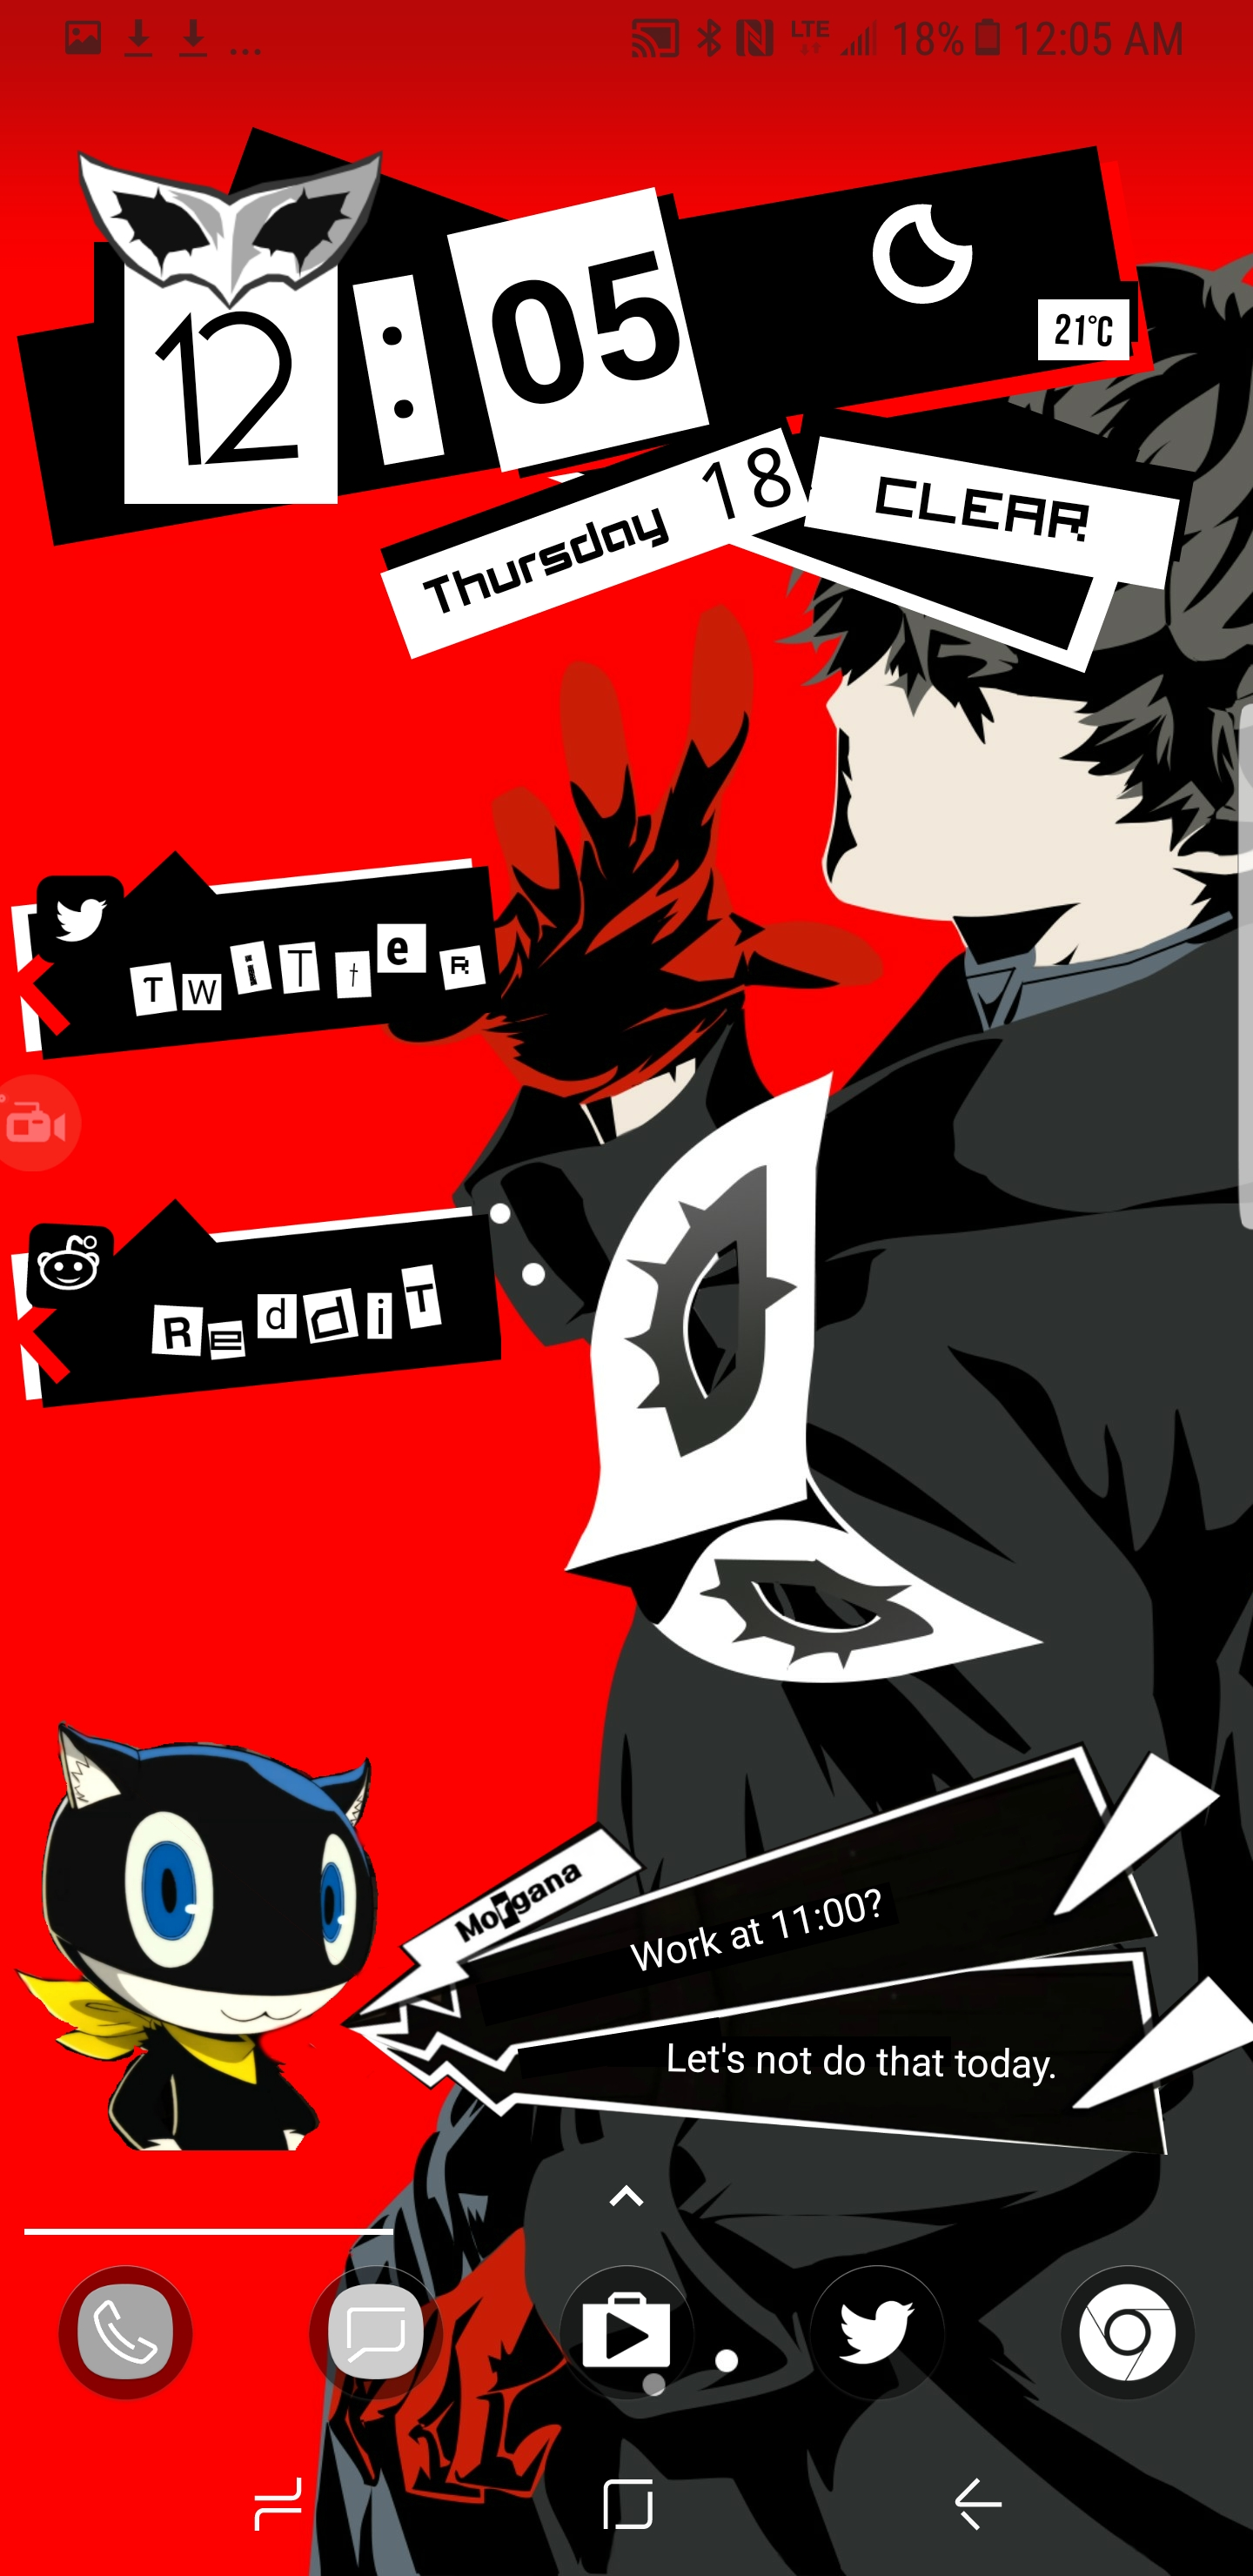 Morgana Calendar Widget For Android - Adding On To Previously Posted Persona 5 Calendar 2019